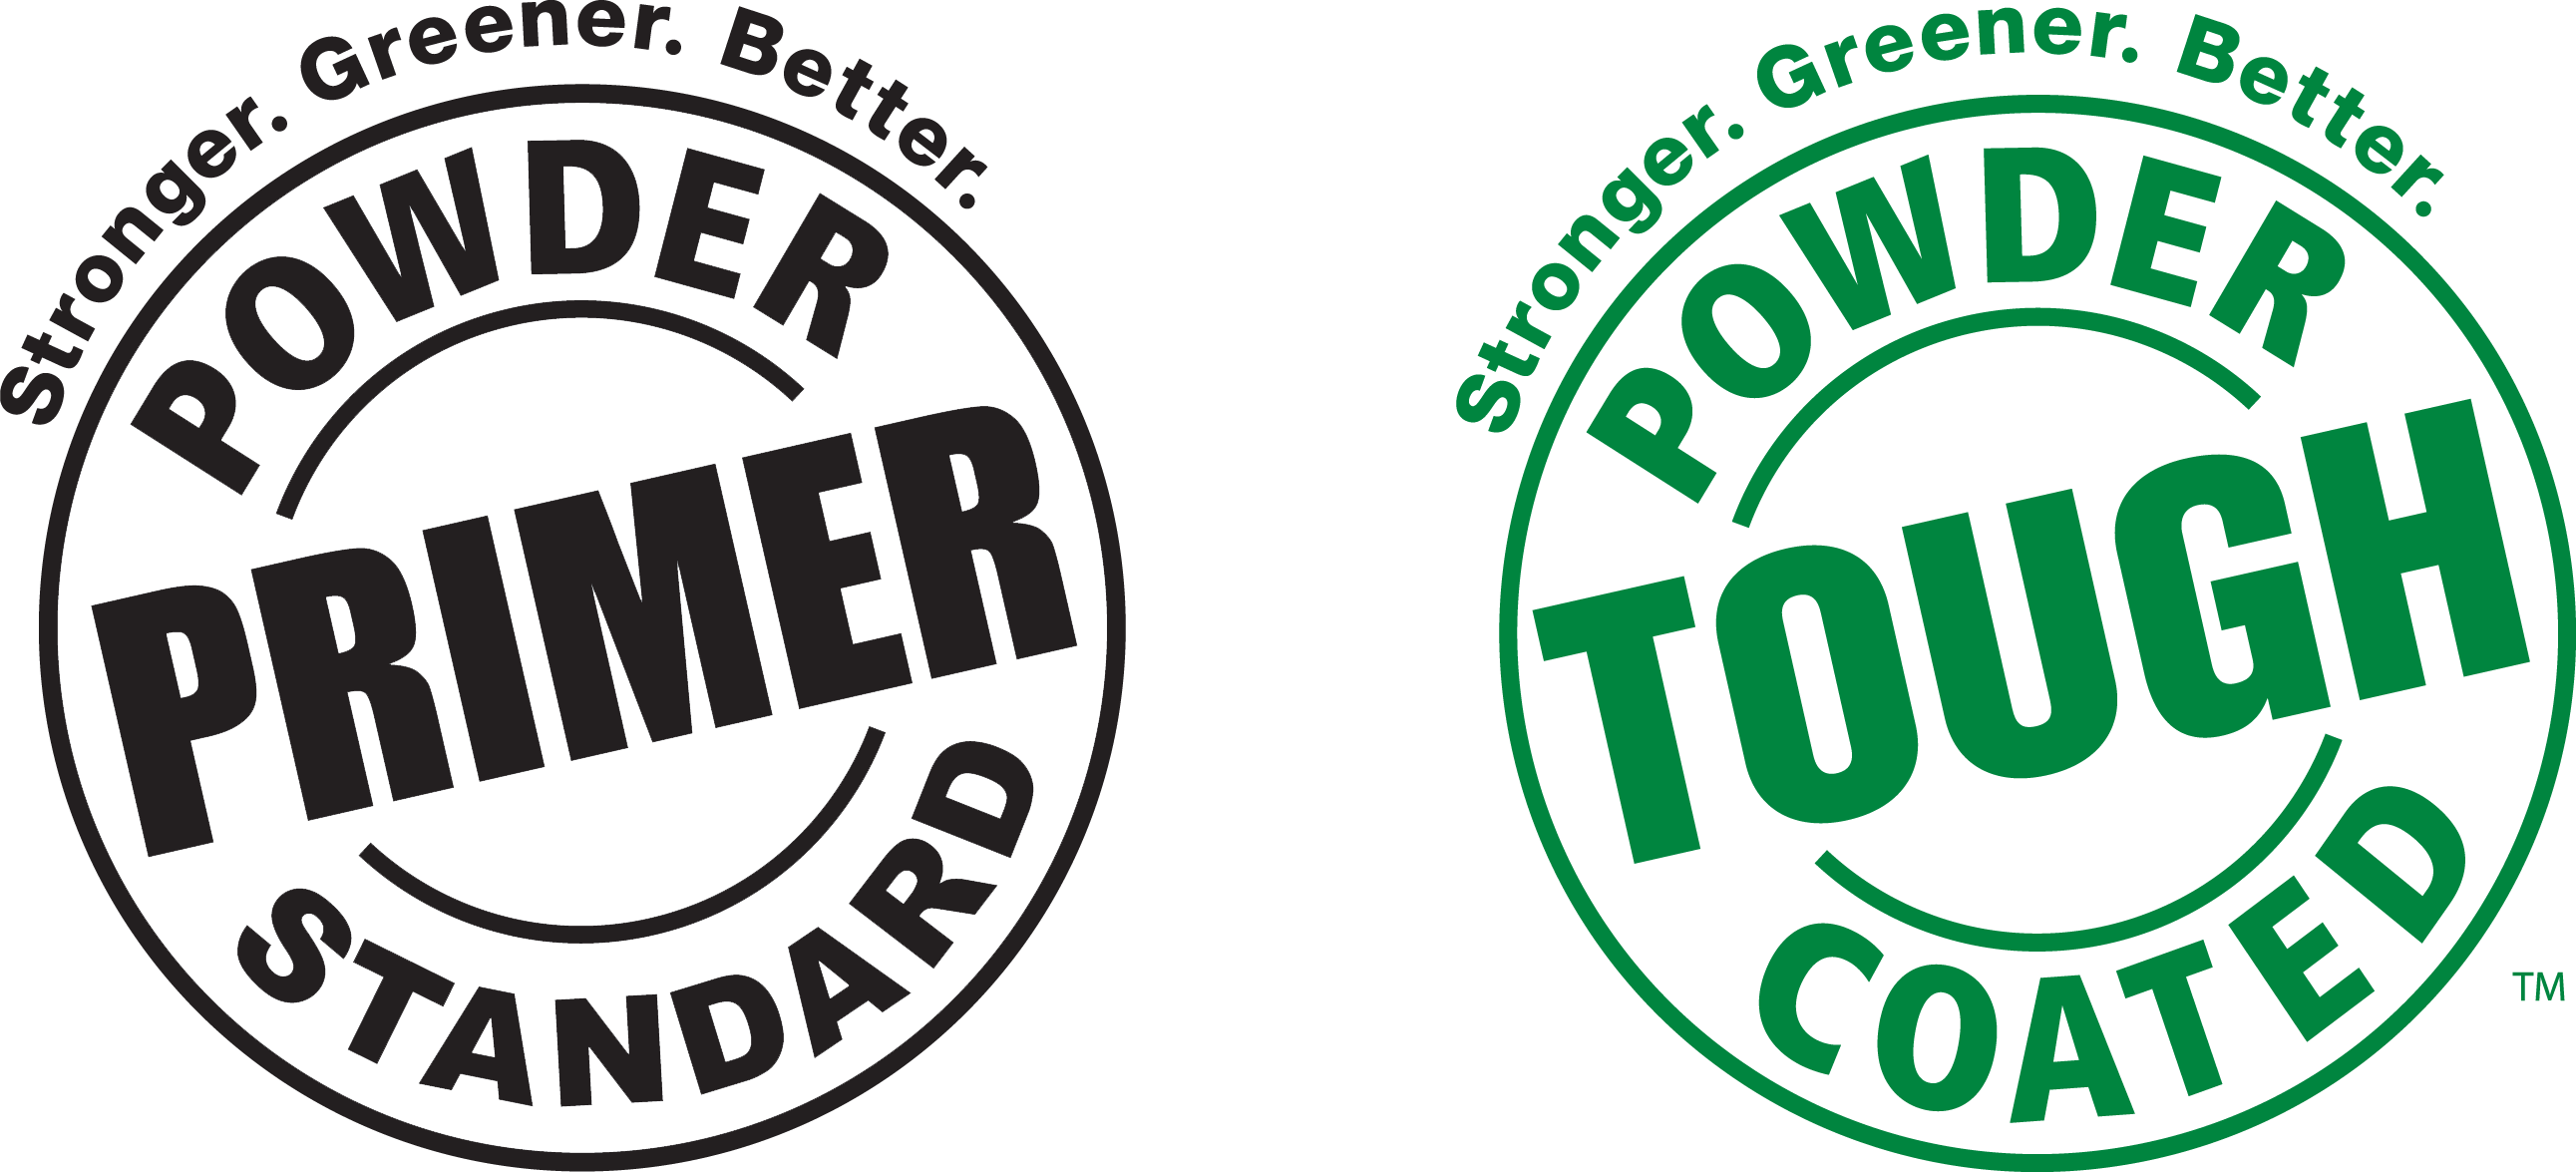 Powder Tough Coated - Stronger. Greener. Better